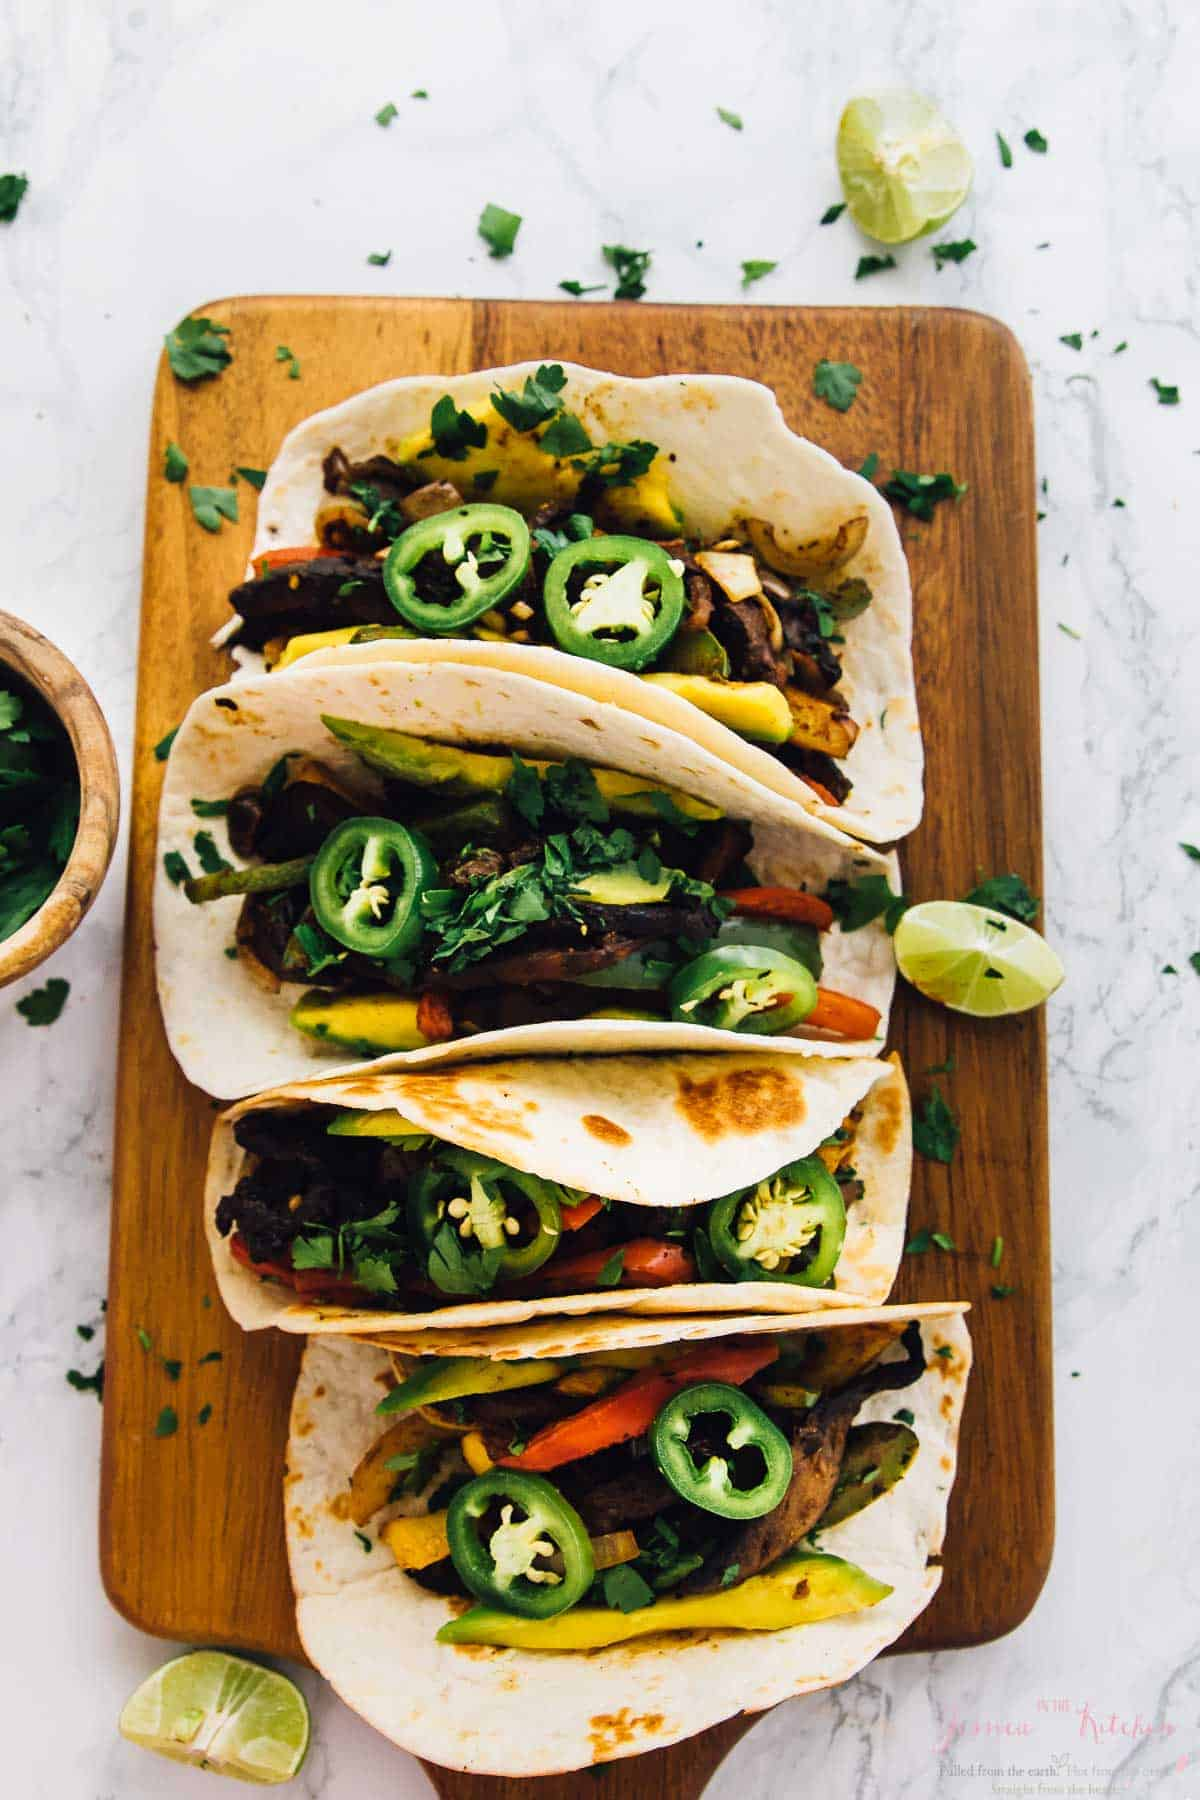 These 30-Minute Vegan Portobello Fajitas are done in just 30 minutes! They're packed with so much flavour, and can also be made on the grill - perfect for summer! via https://jessicainthekitchen.com